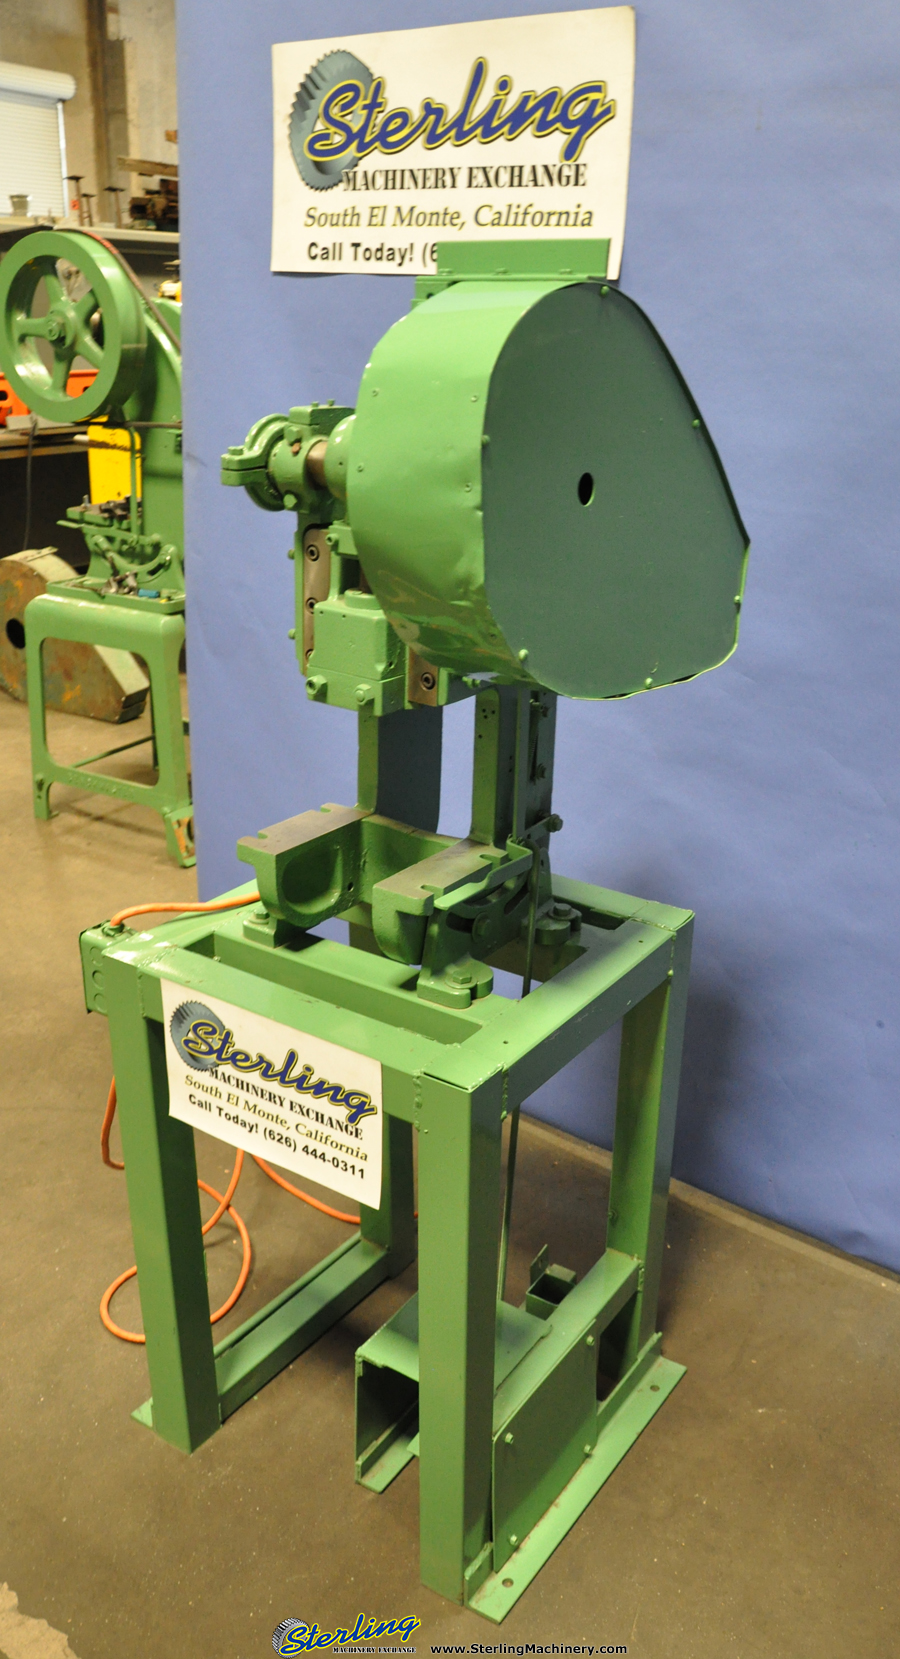 Small Punch Press for Sale http://blog.sterlingmachinery.com/?p=4581